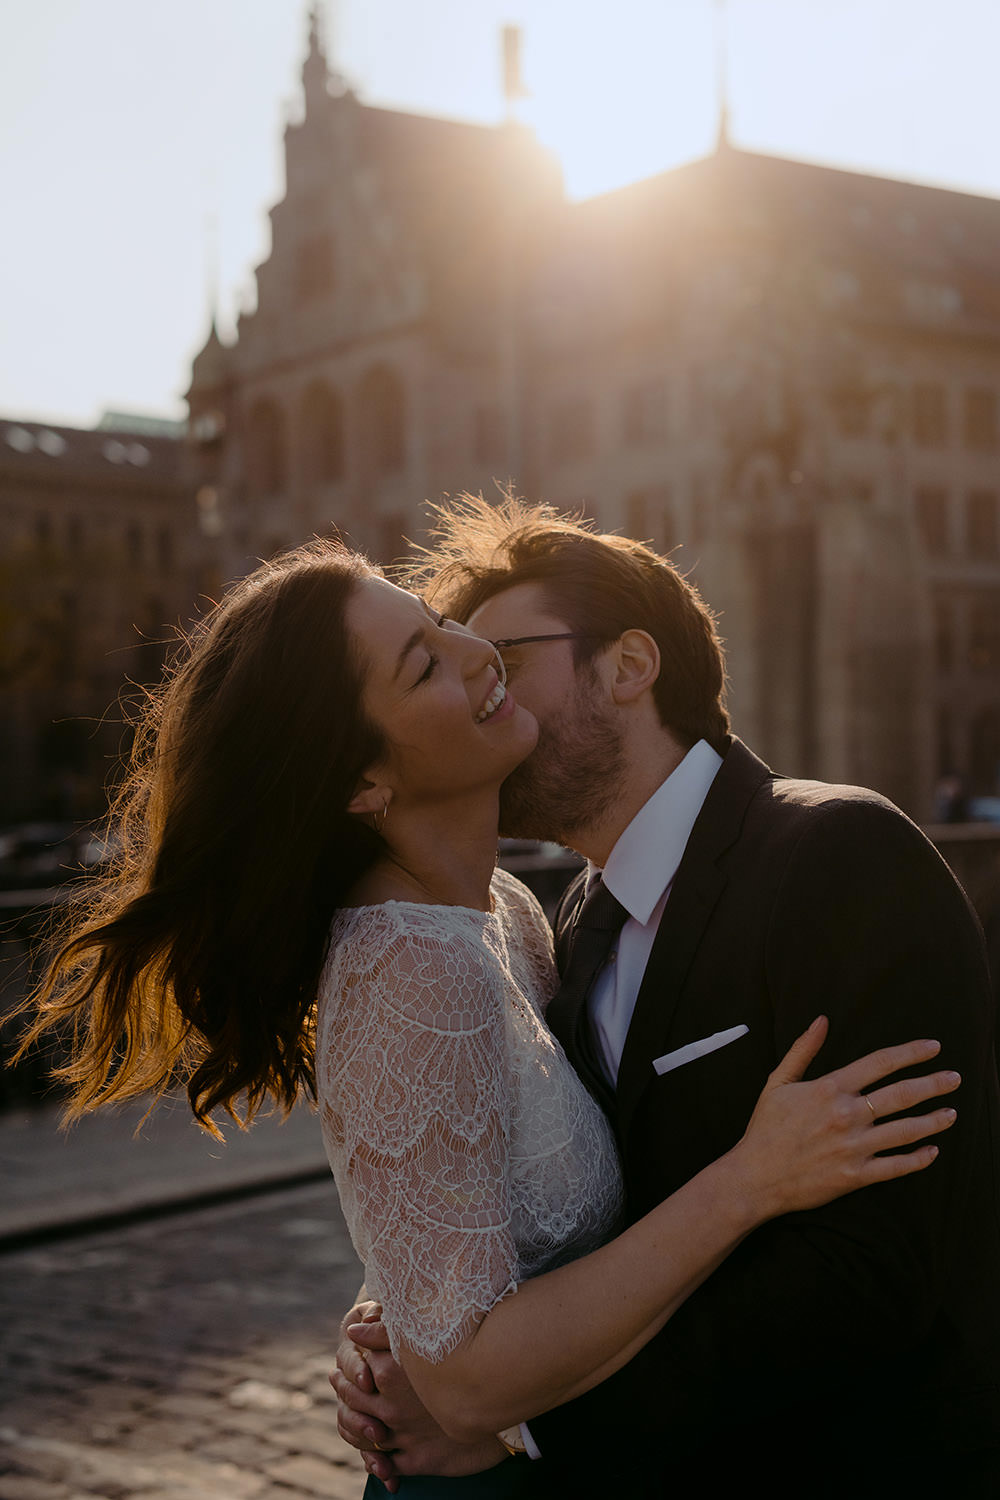 couple kissing in front of the Stadthaus in Zurich, her hair is blowing in the wind and she's laughting, he is kissing her neck